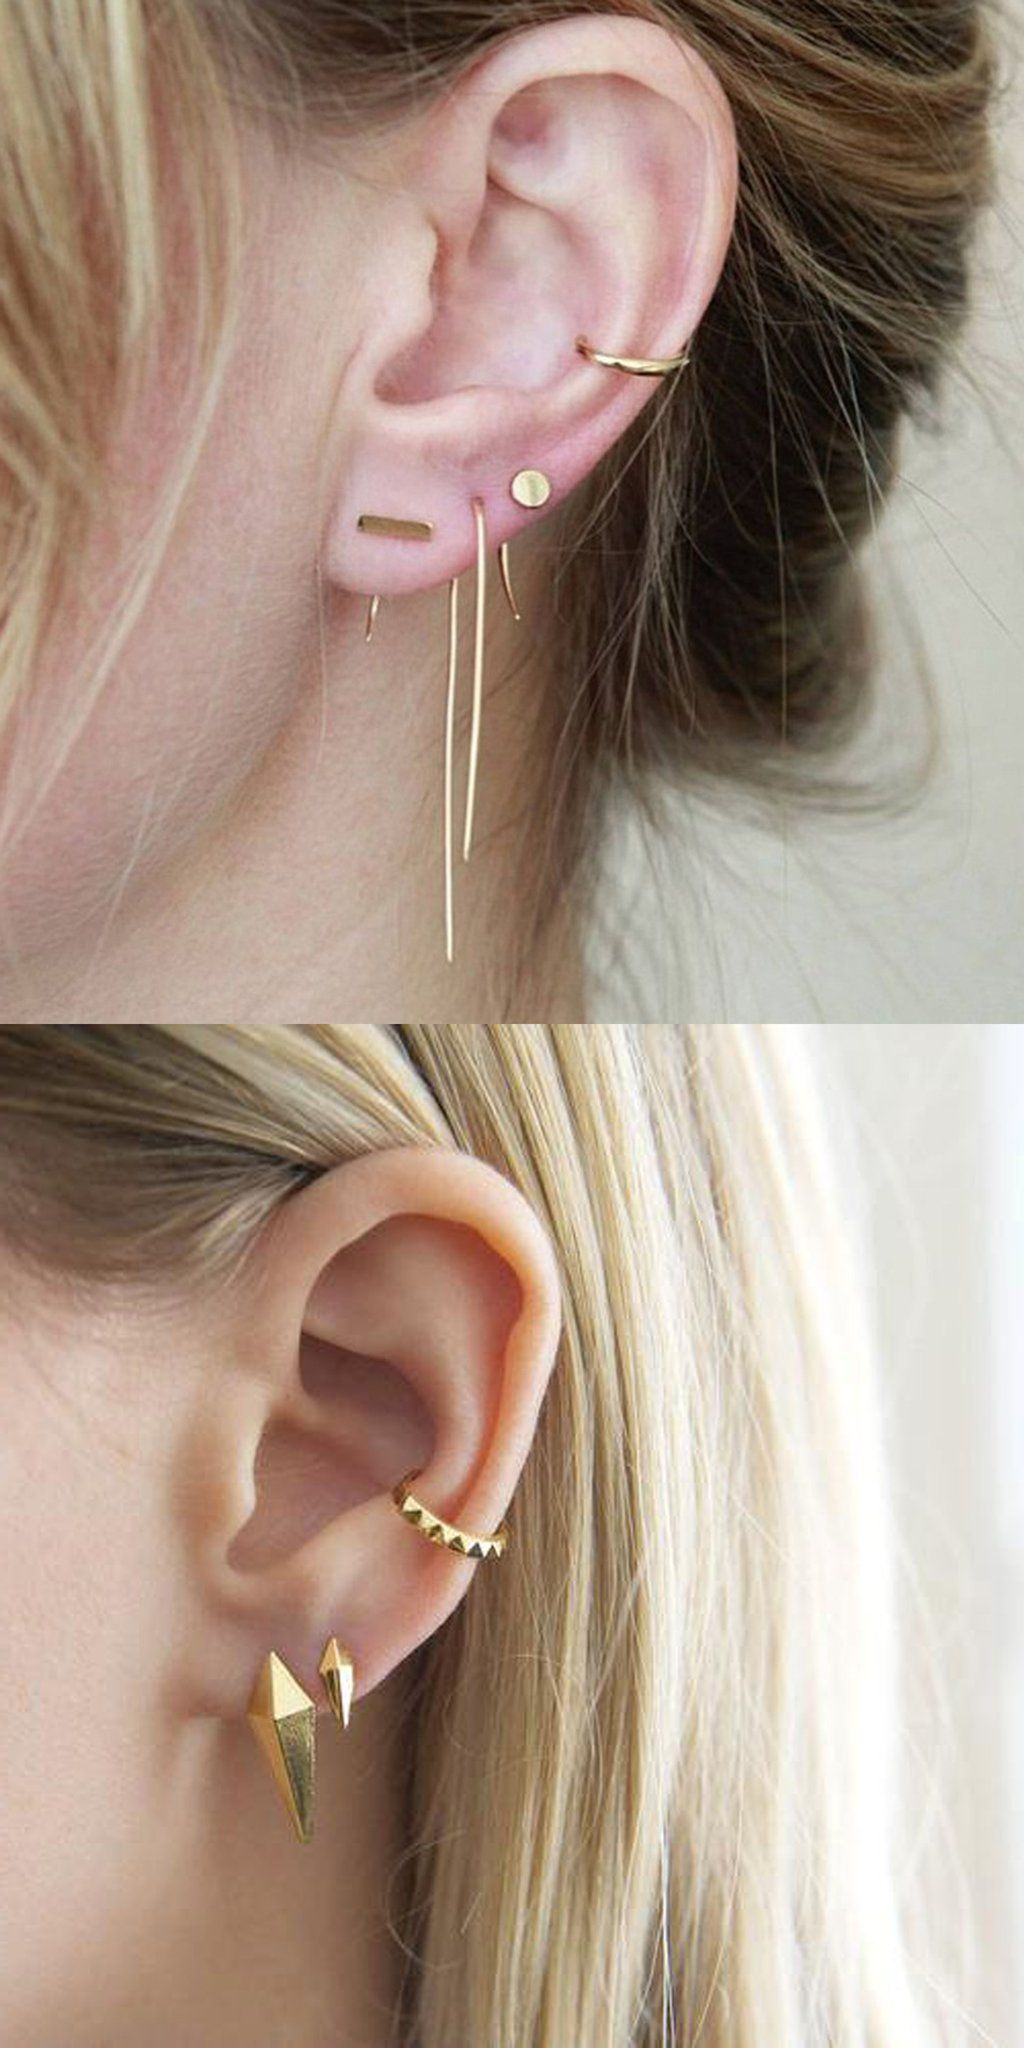 30 Ear Piercing Ideas that are Trending NOW v roce 2018